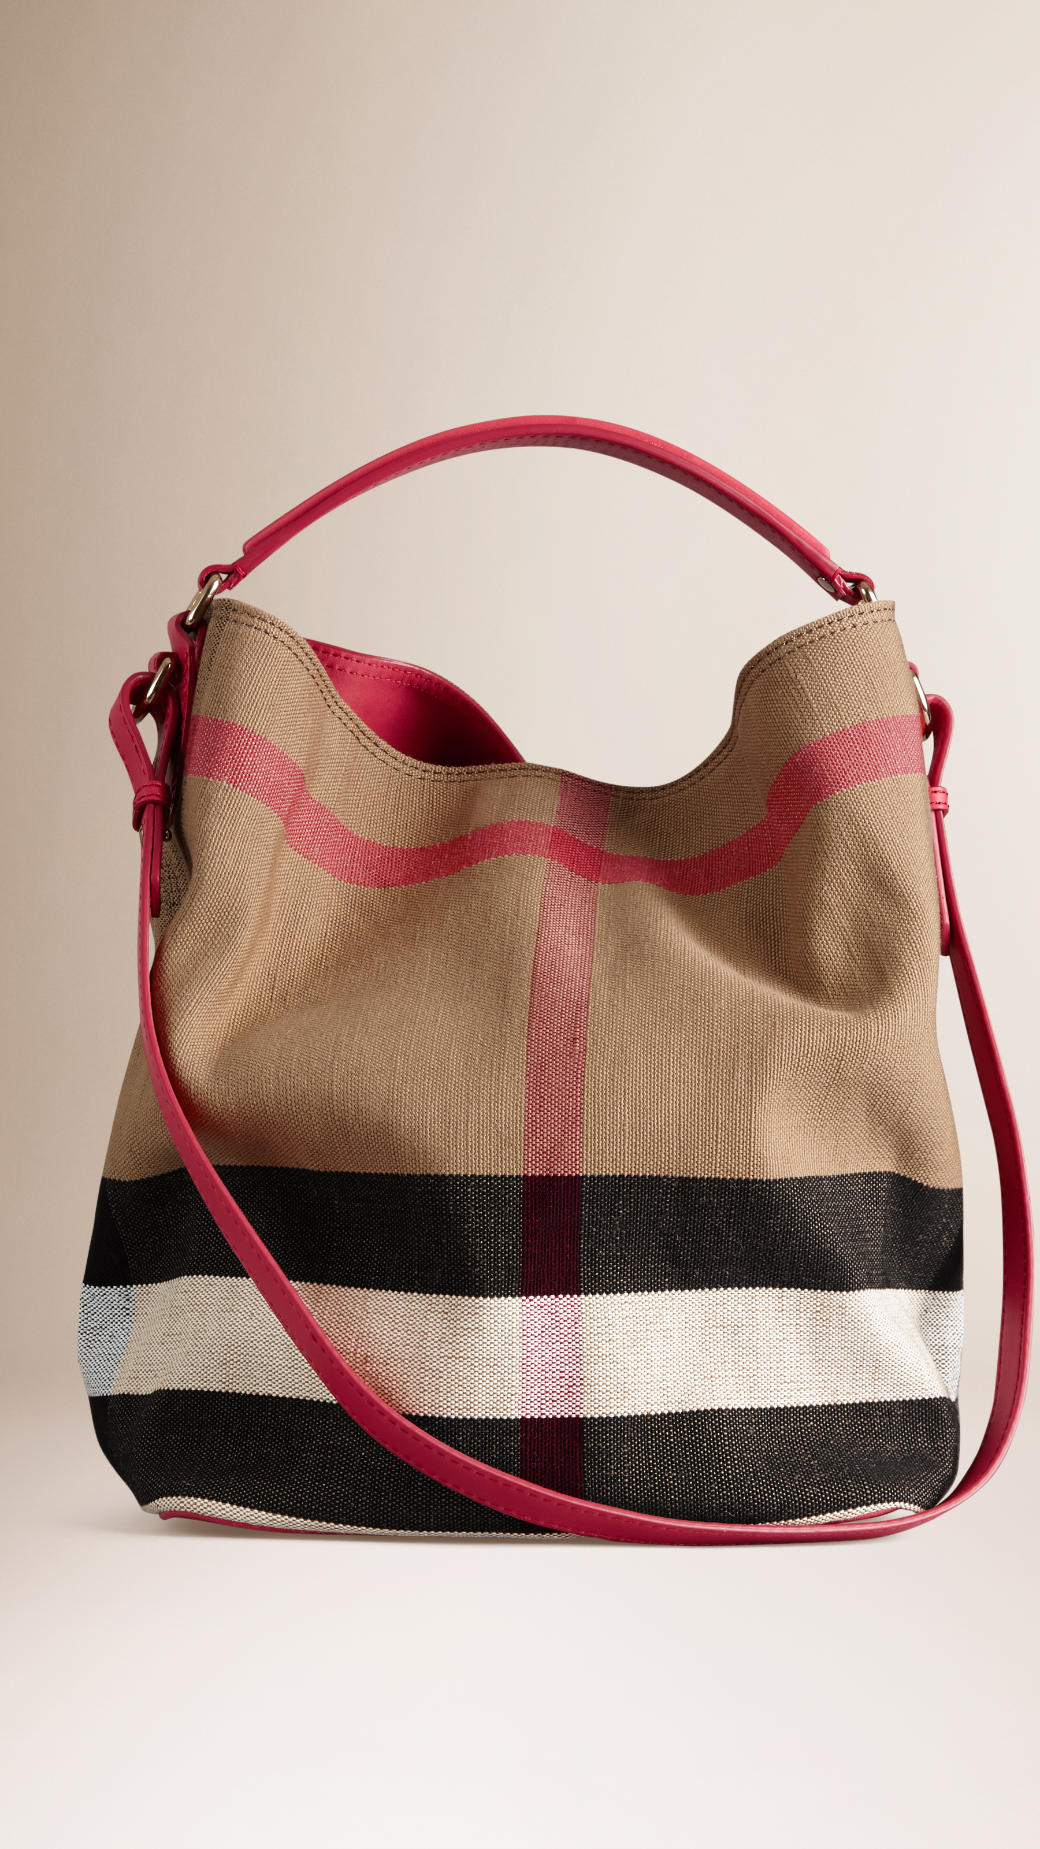 Lyst - Burberry The Medium Ashby Canvas Check And Leather Bag in Pink 2488ebf353bf4